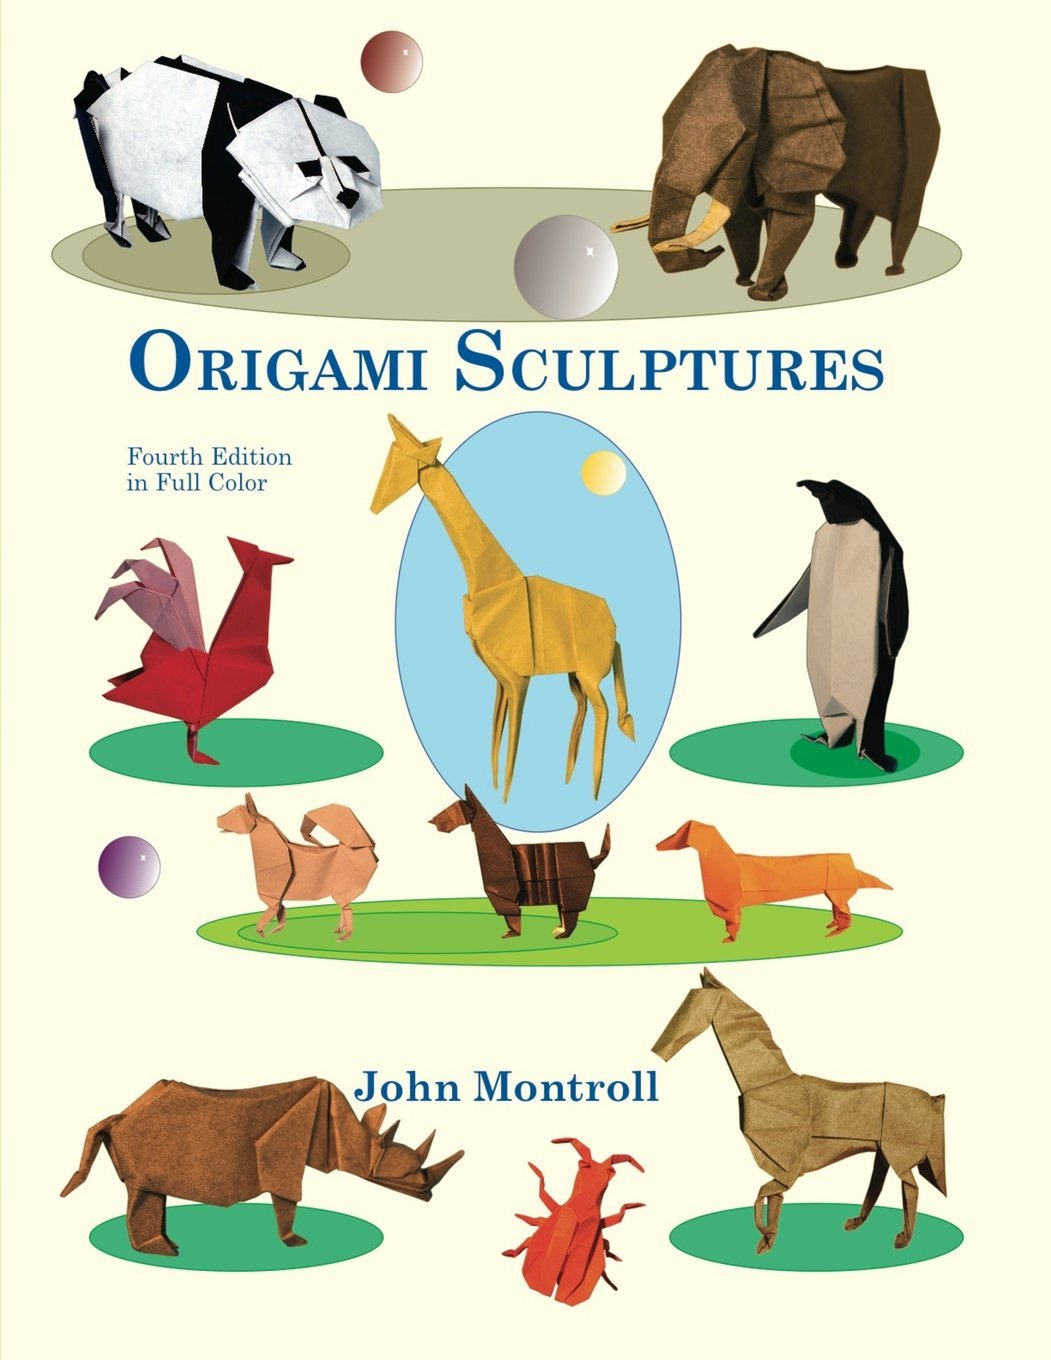 Origami Sculptures John Montroll 9781877656248 Books Folding Diagram 1 Of 3 Scottish Terrier Dog Money